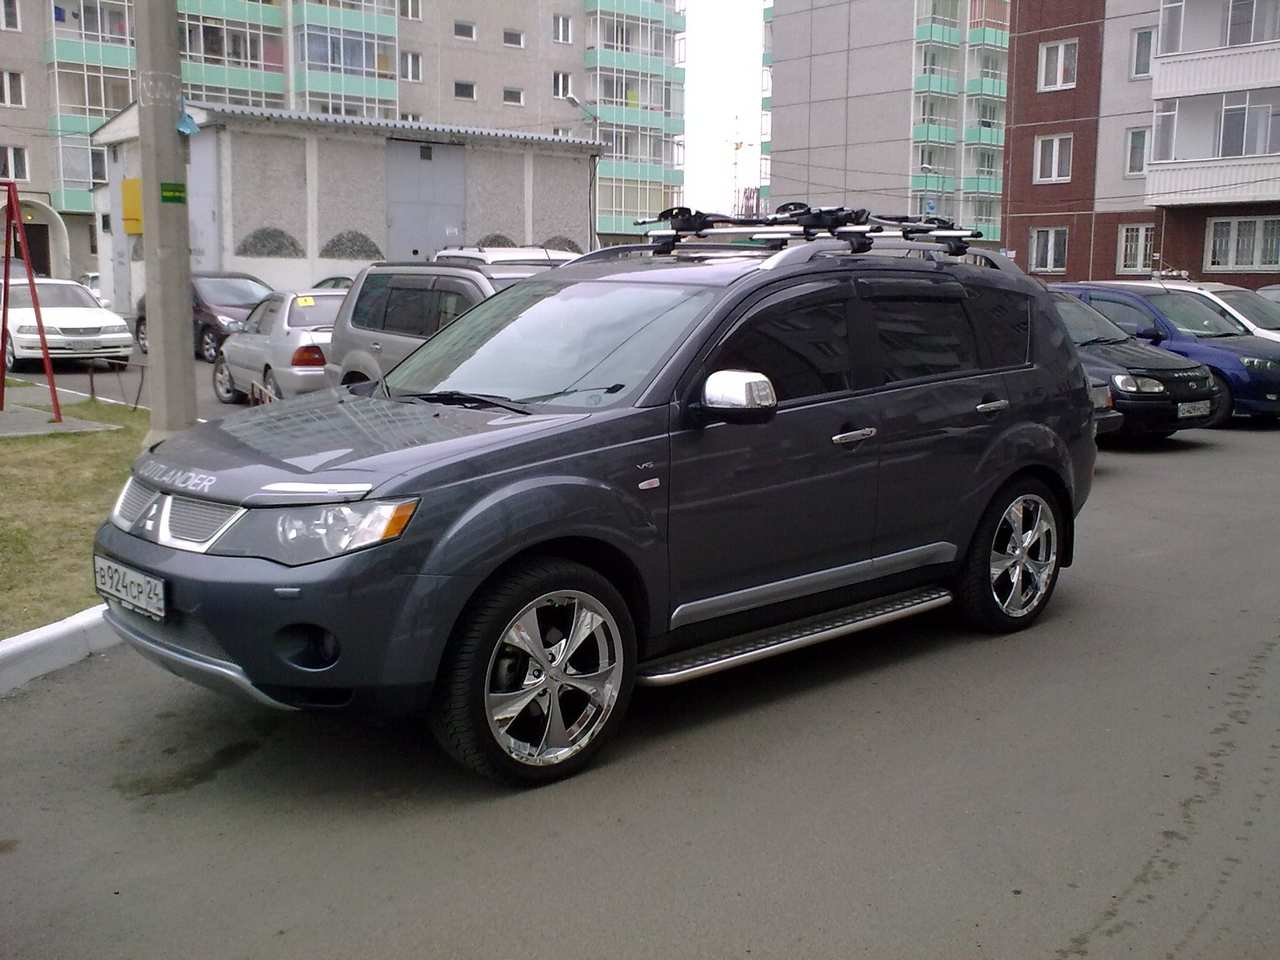 2008 mitsubishi outlander pictures gasoline automatic for sale. Black Bedroom Furniture Sets. Home Design Ideas